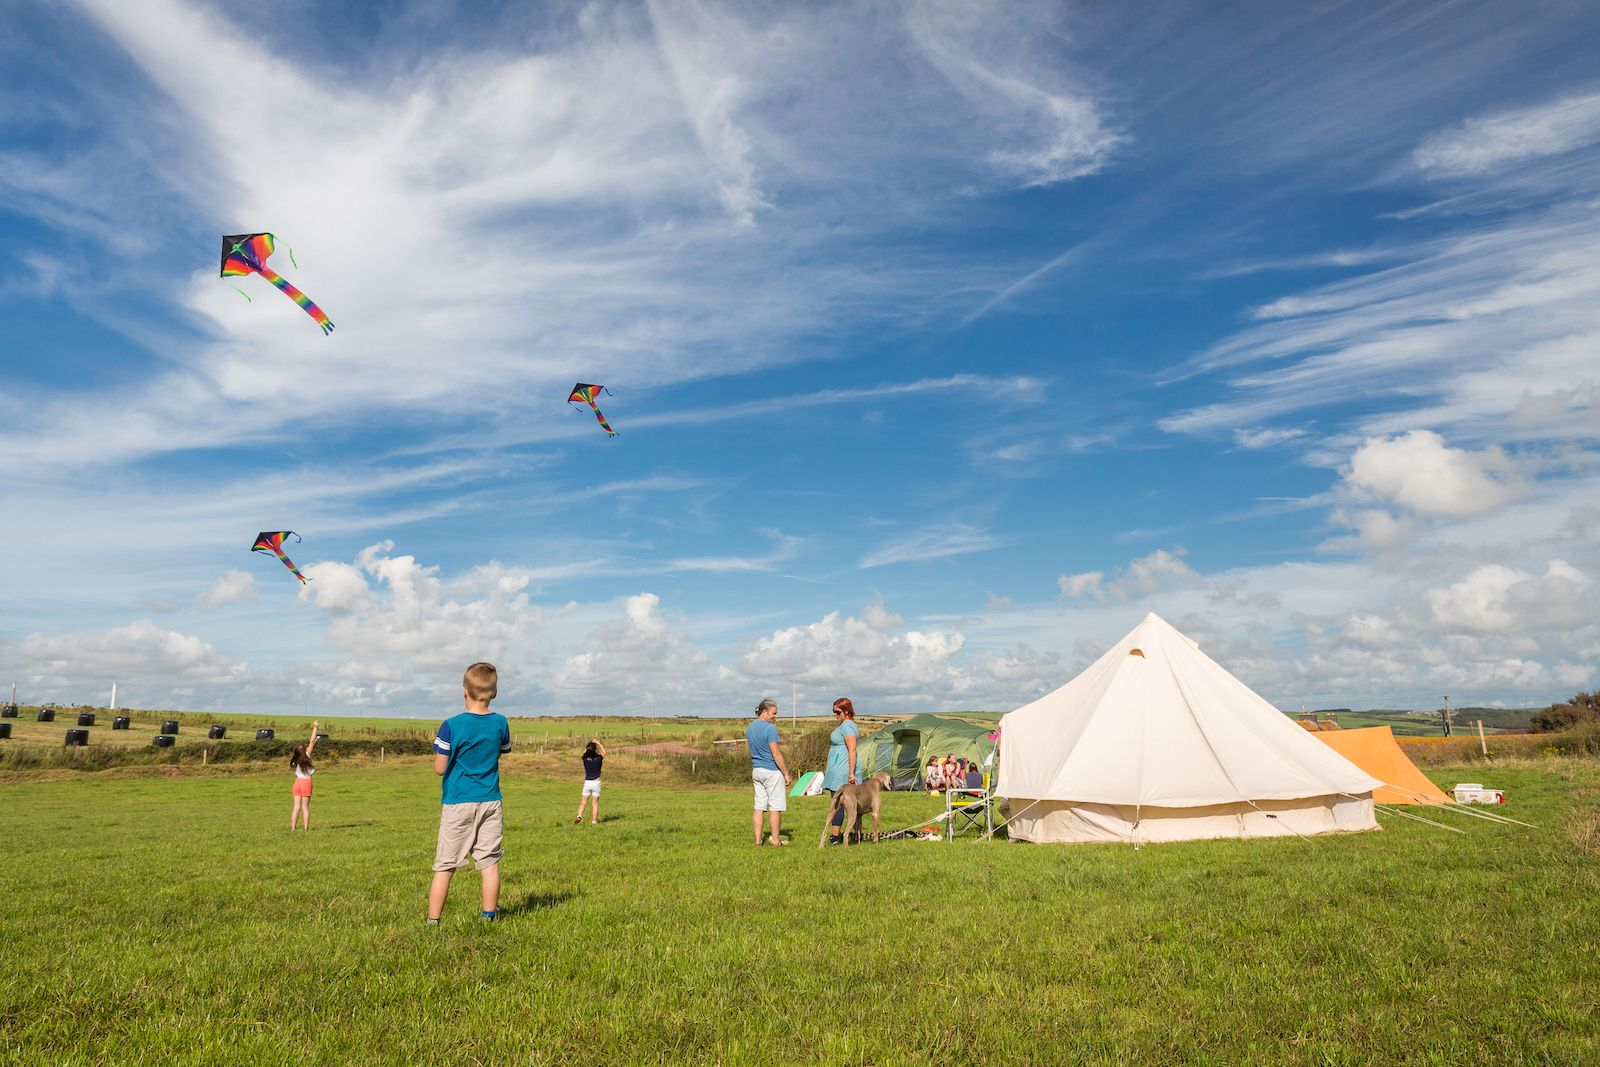 A National Trust campsite in Pembrokeshire in a simple, rustic setting with facilities including a heated toilet and shower block, a wet weather barn, communal areas and loads of outdoor space.